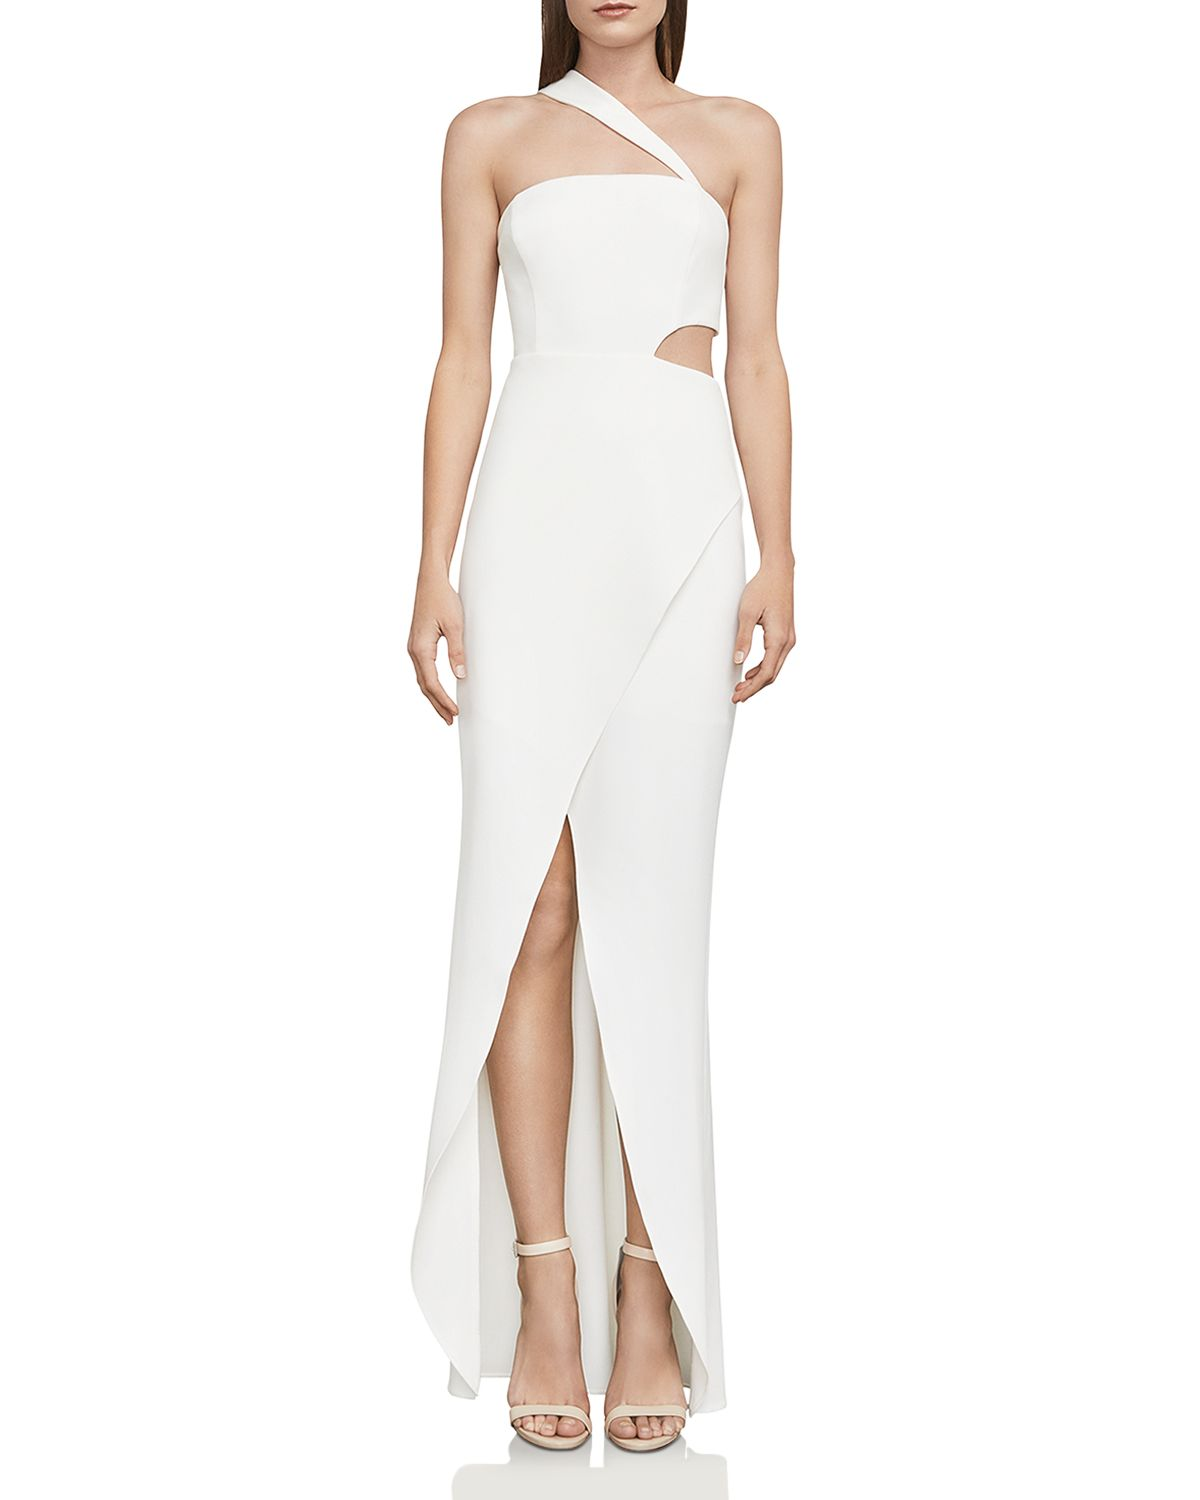 One Shoulder Cutout Gown   100% Exclusive by Bcbgmaxazria